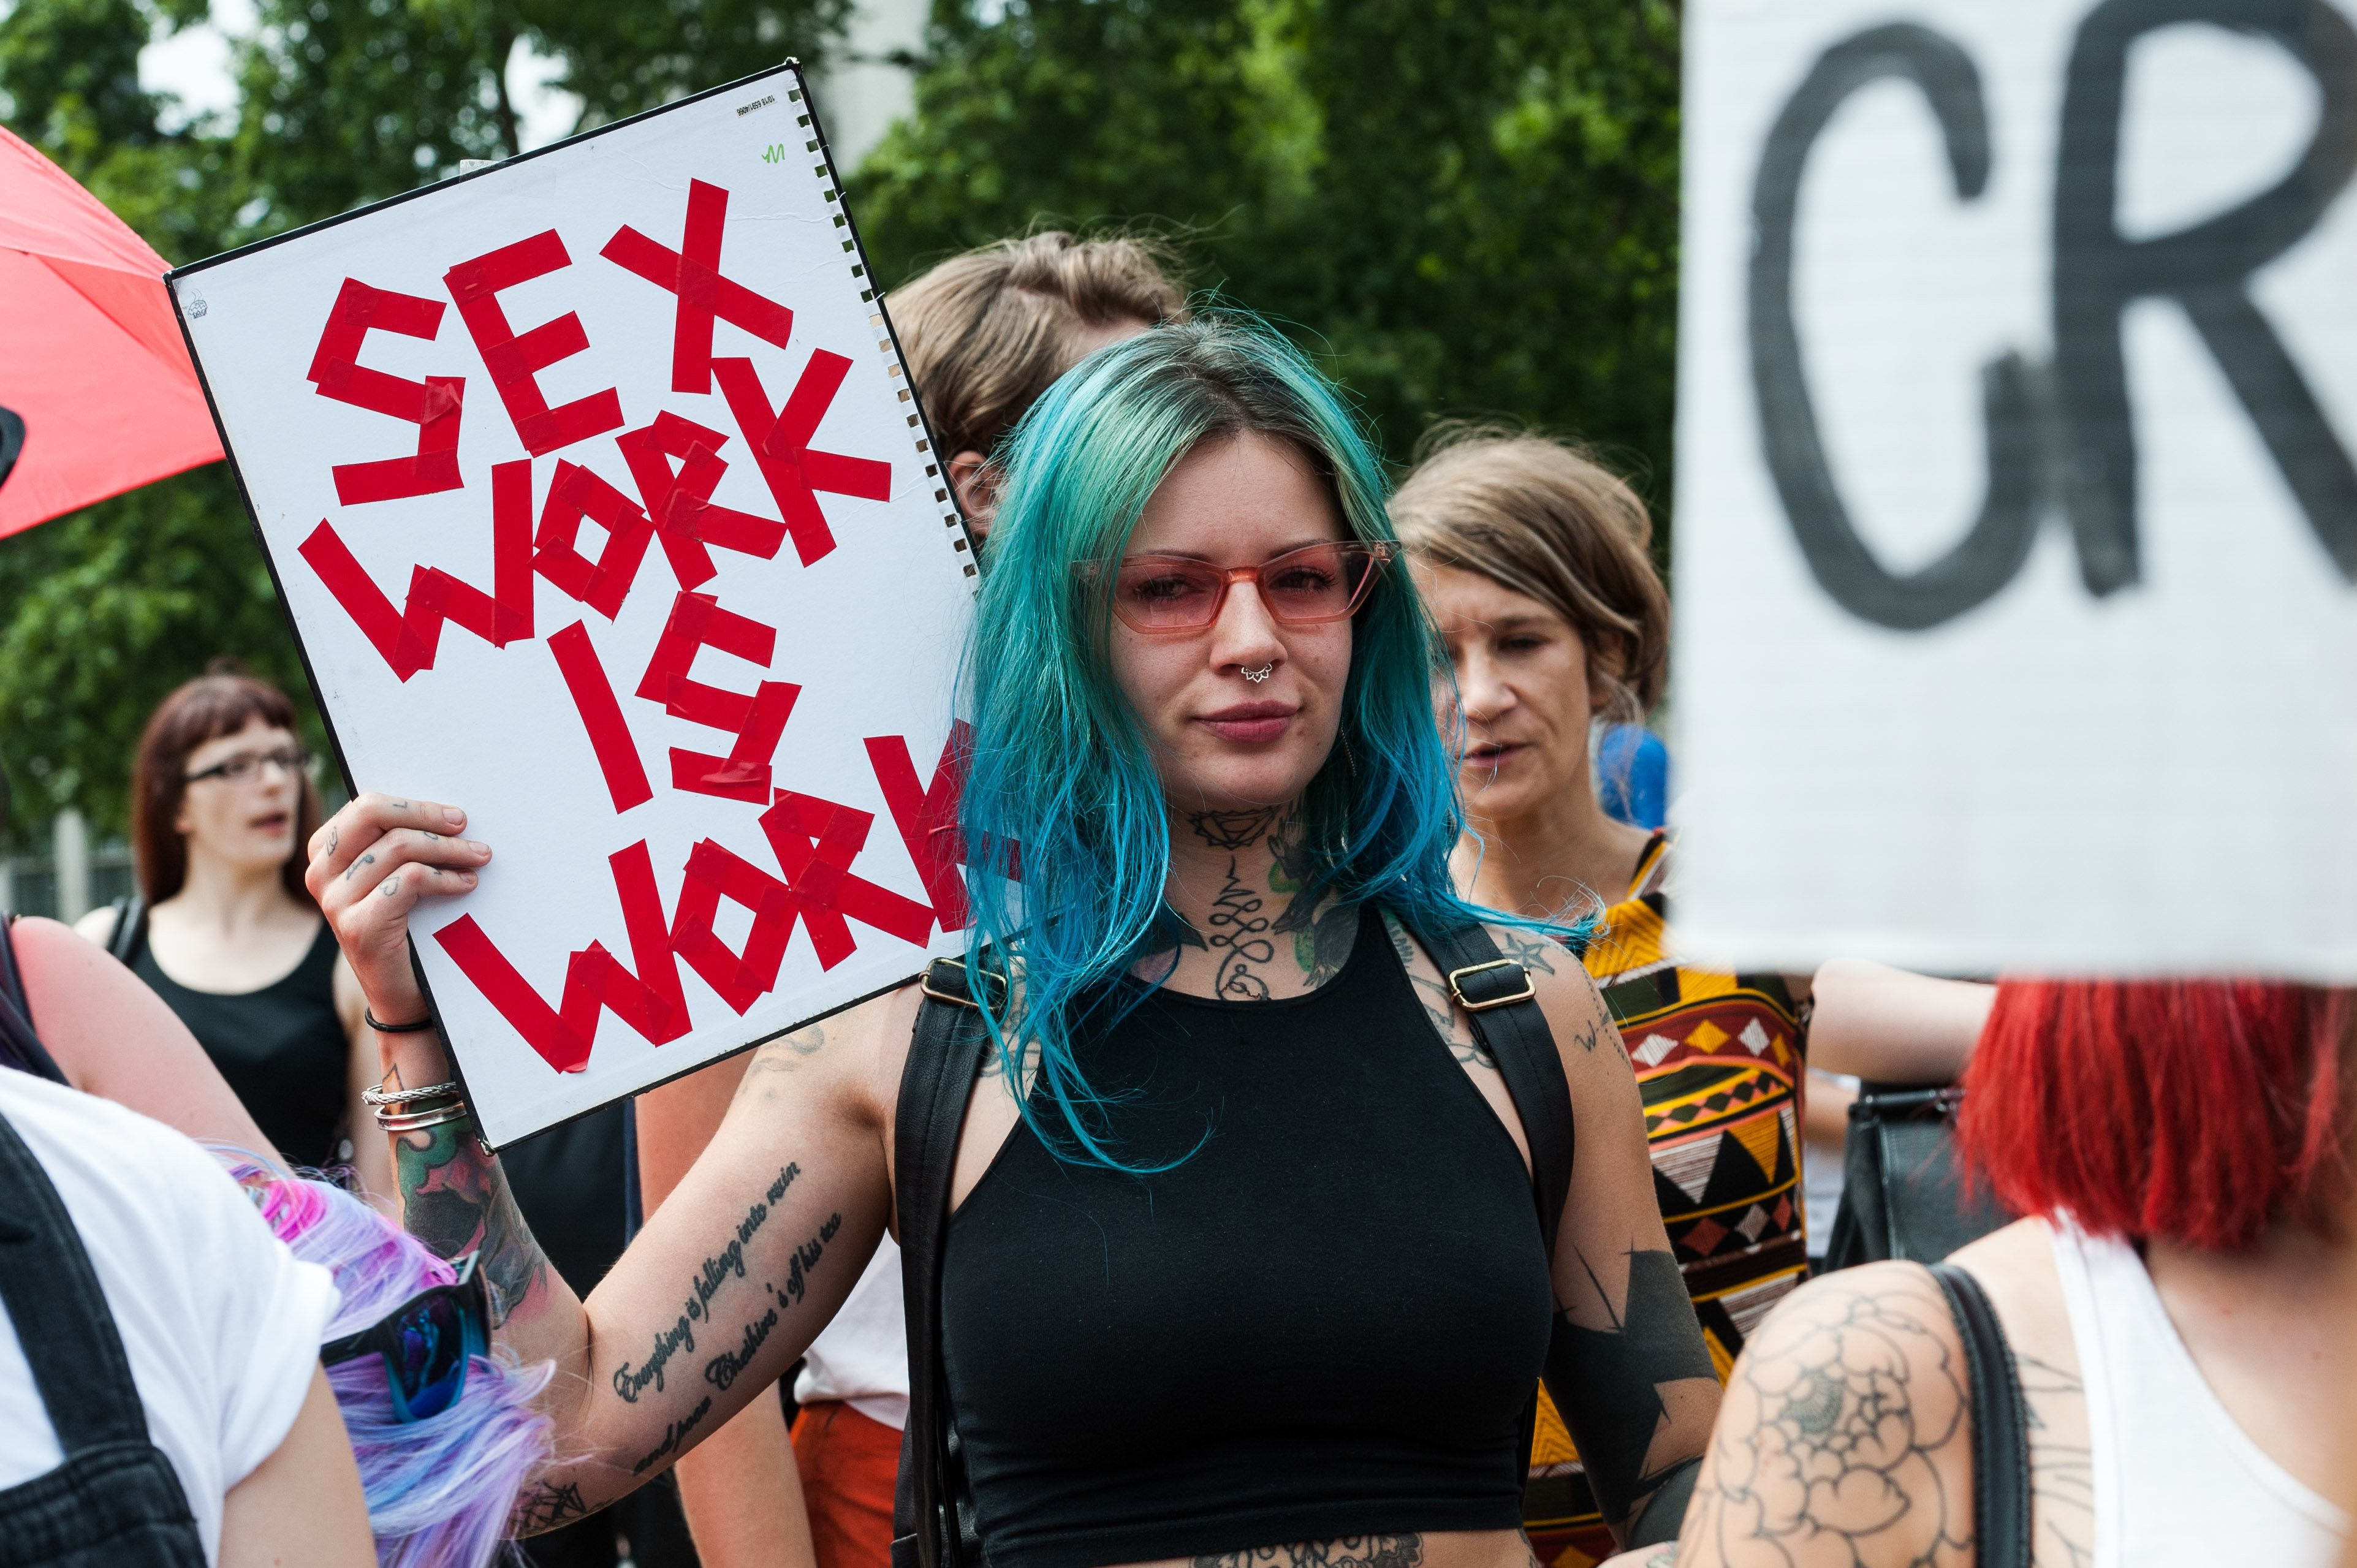 Sex workersprotest in central London on Wednesday. Parliament is considering legislation that targets websites. It's si